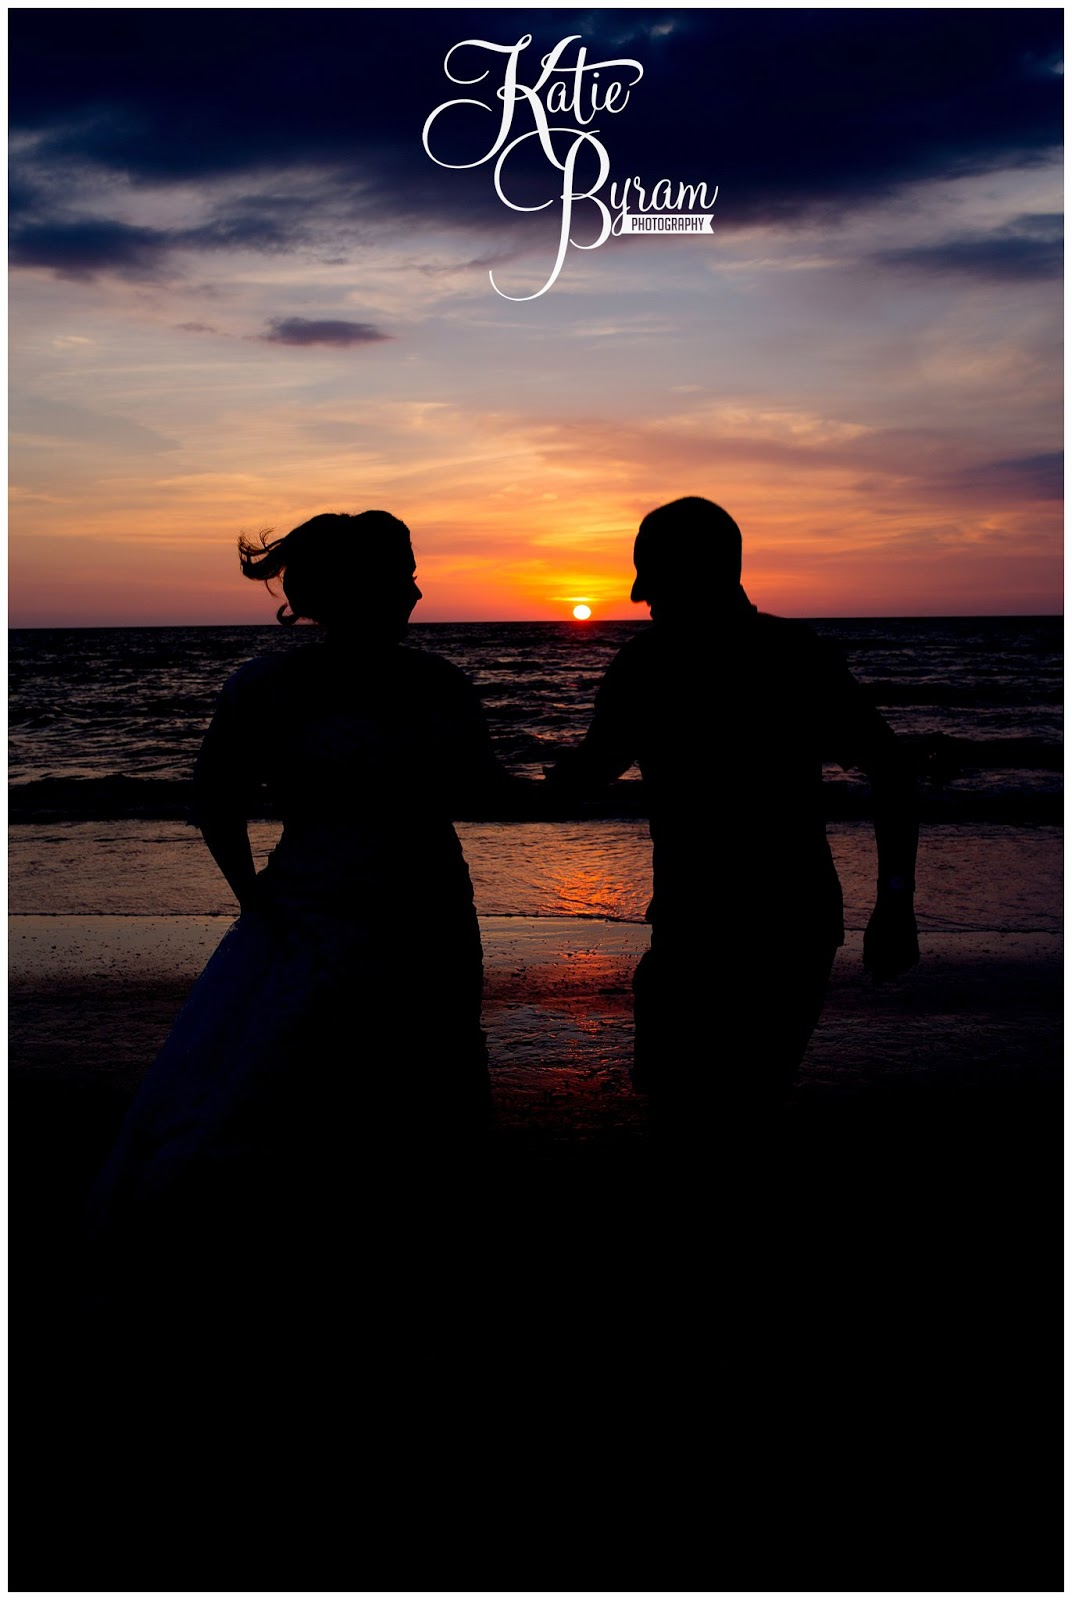 bride and groom sunset, nautical wedding, beach wedding theme, destination wedding, clearwater beach wedding, hilton clearwater beach wedding, katie byram photography, florida wedding